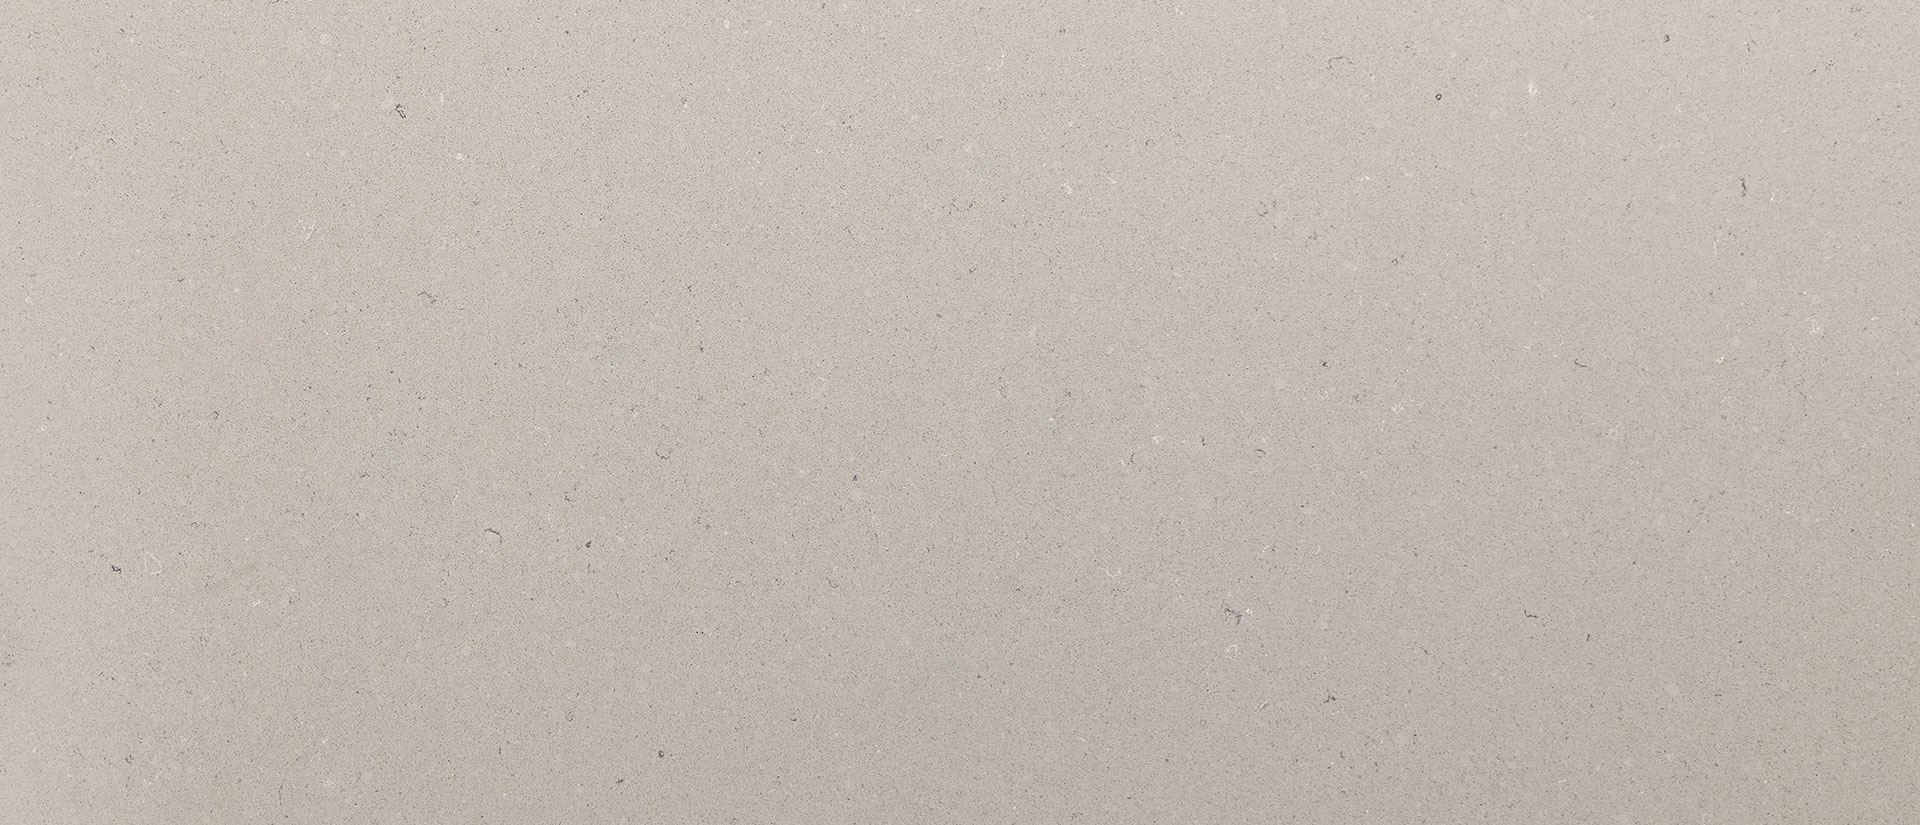 Taupe Quartz Countertop Fossil Taupe Quartz Countertop Kitchen Cabinets Tiles Nj